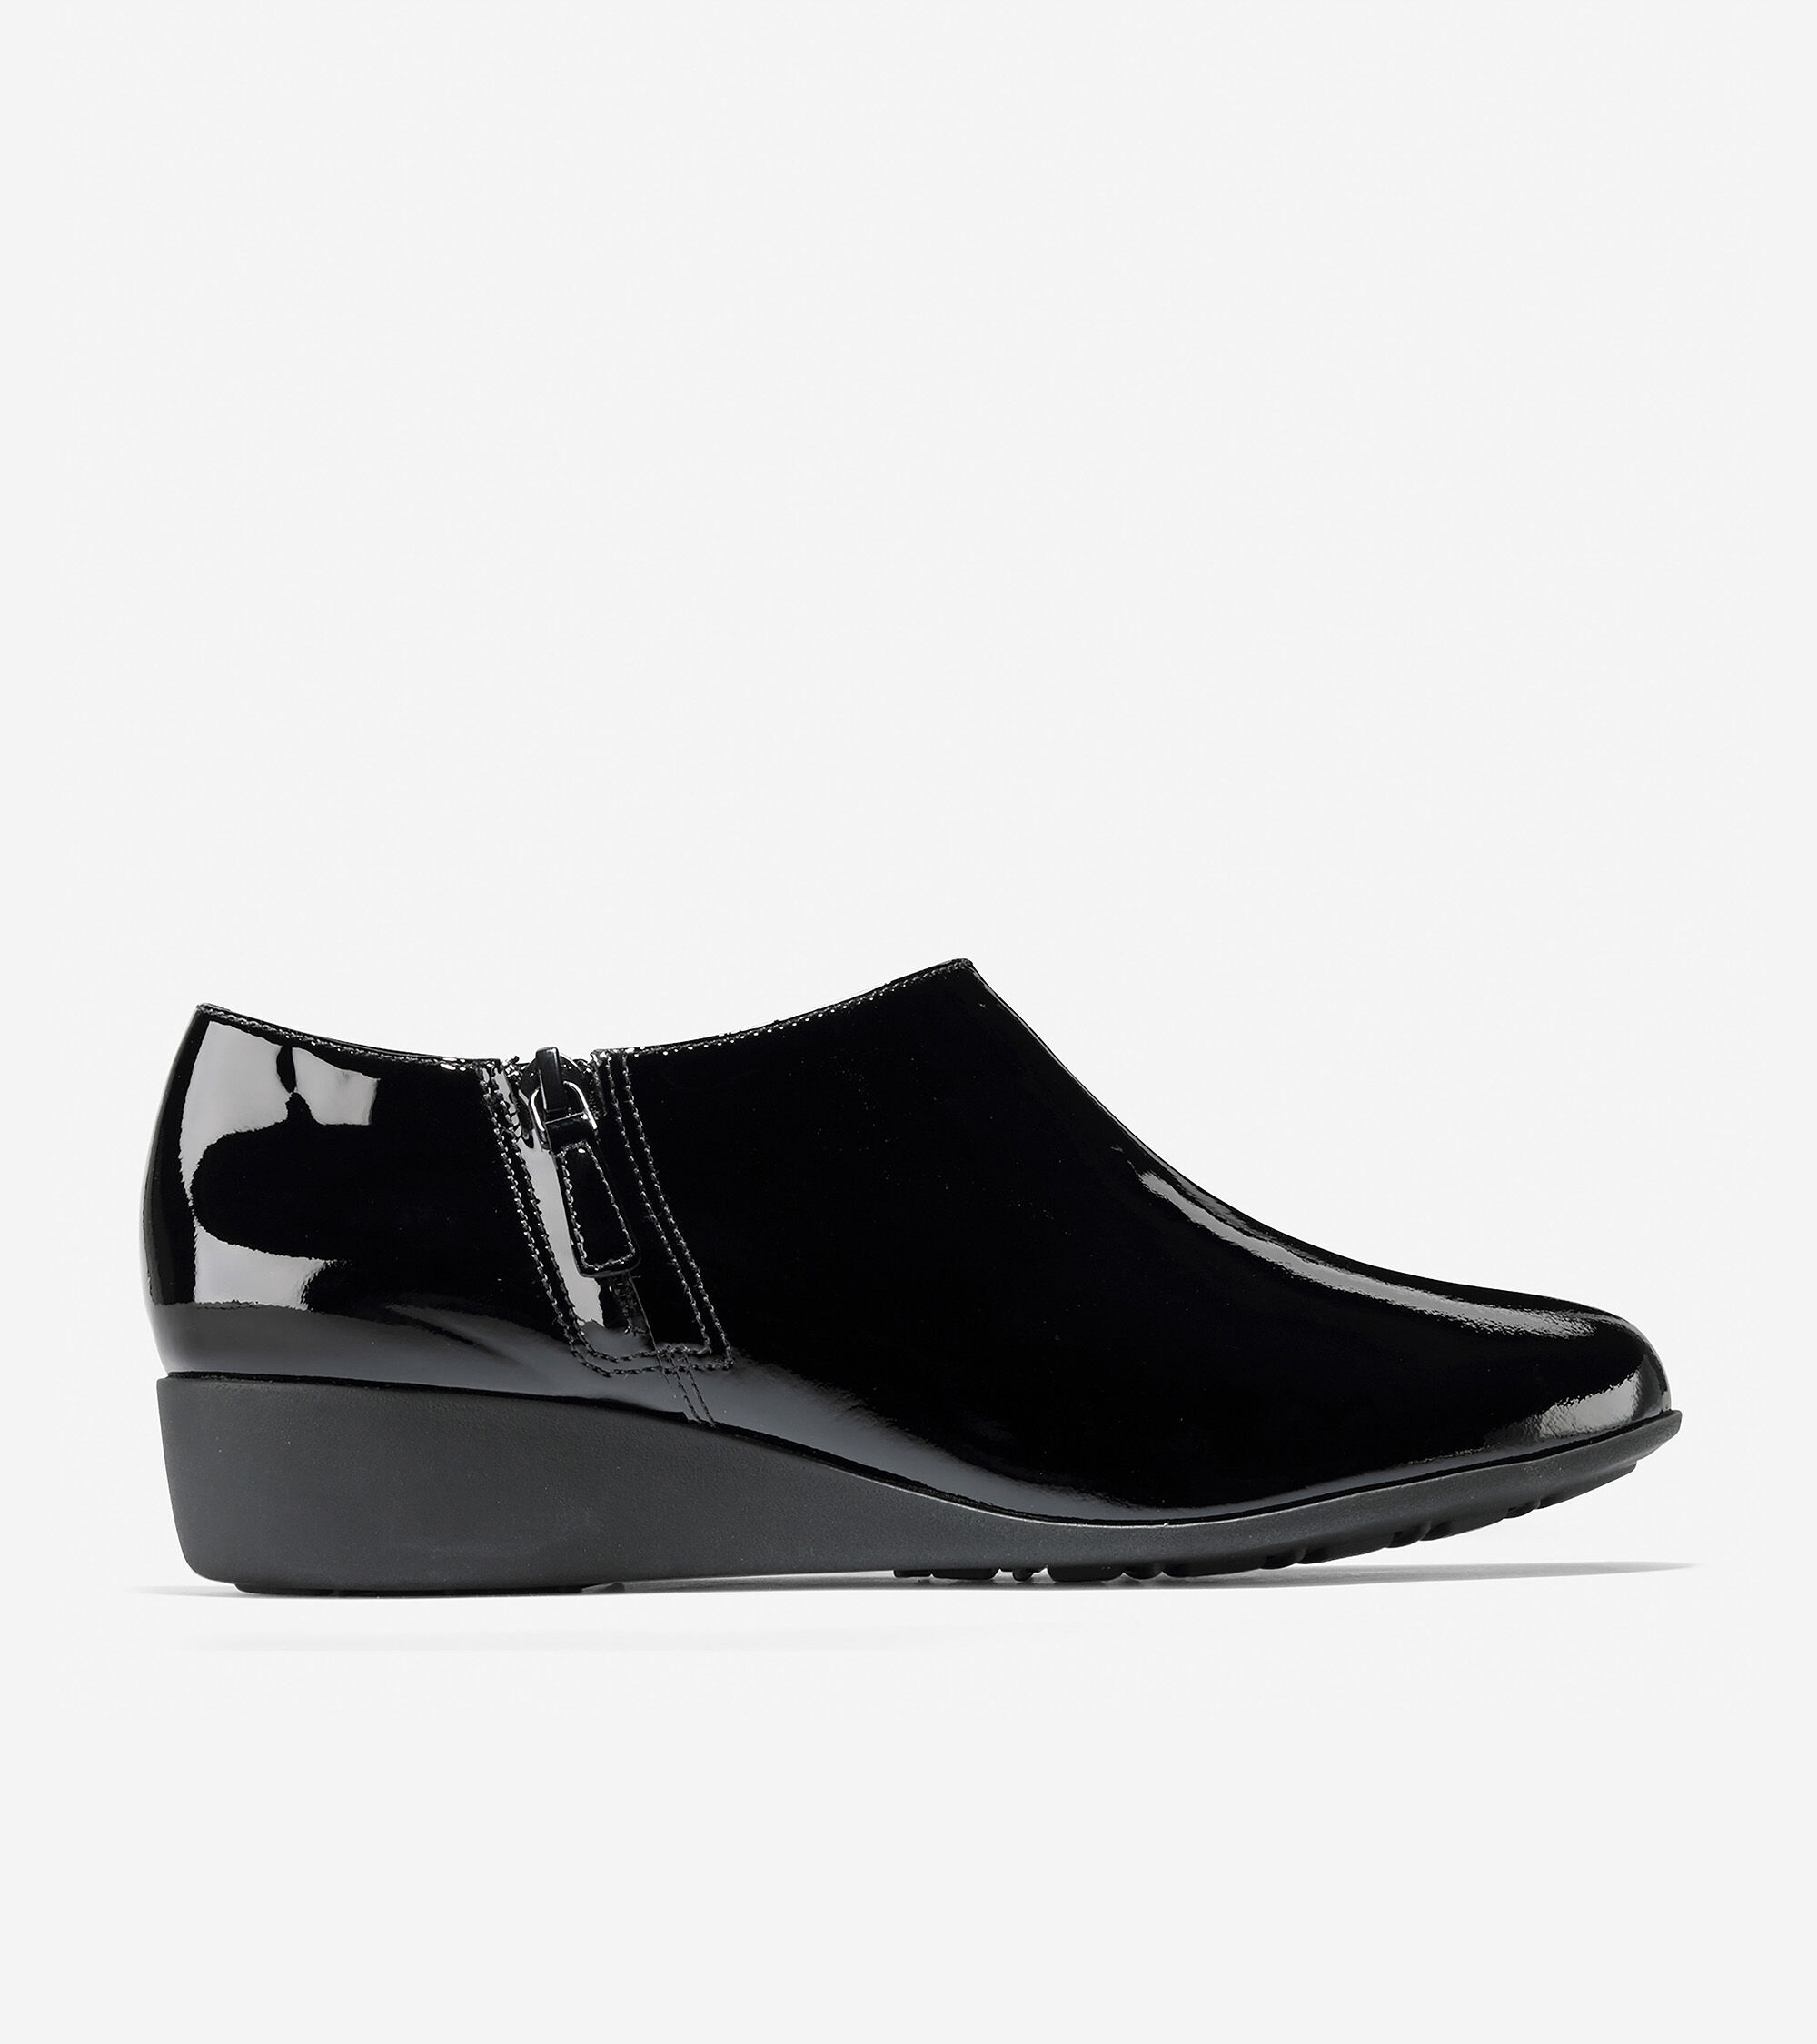 cole haan shoes 10 millimeters equals what in inches 696835